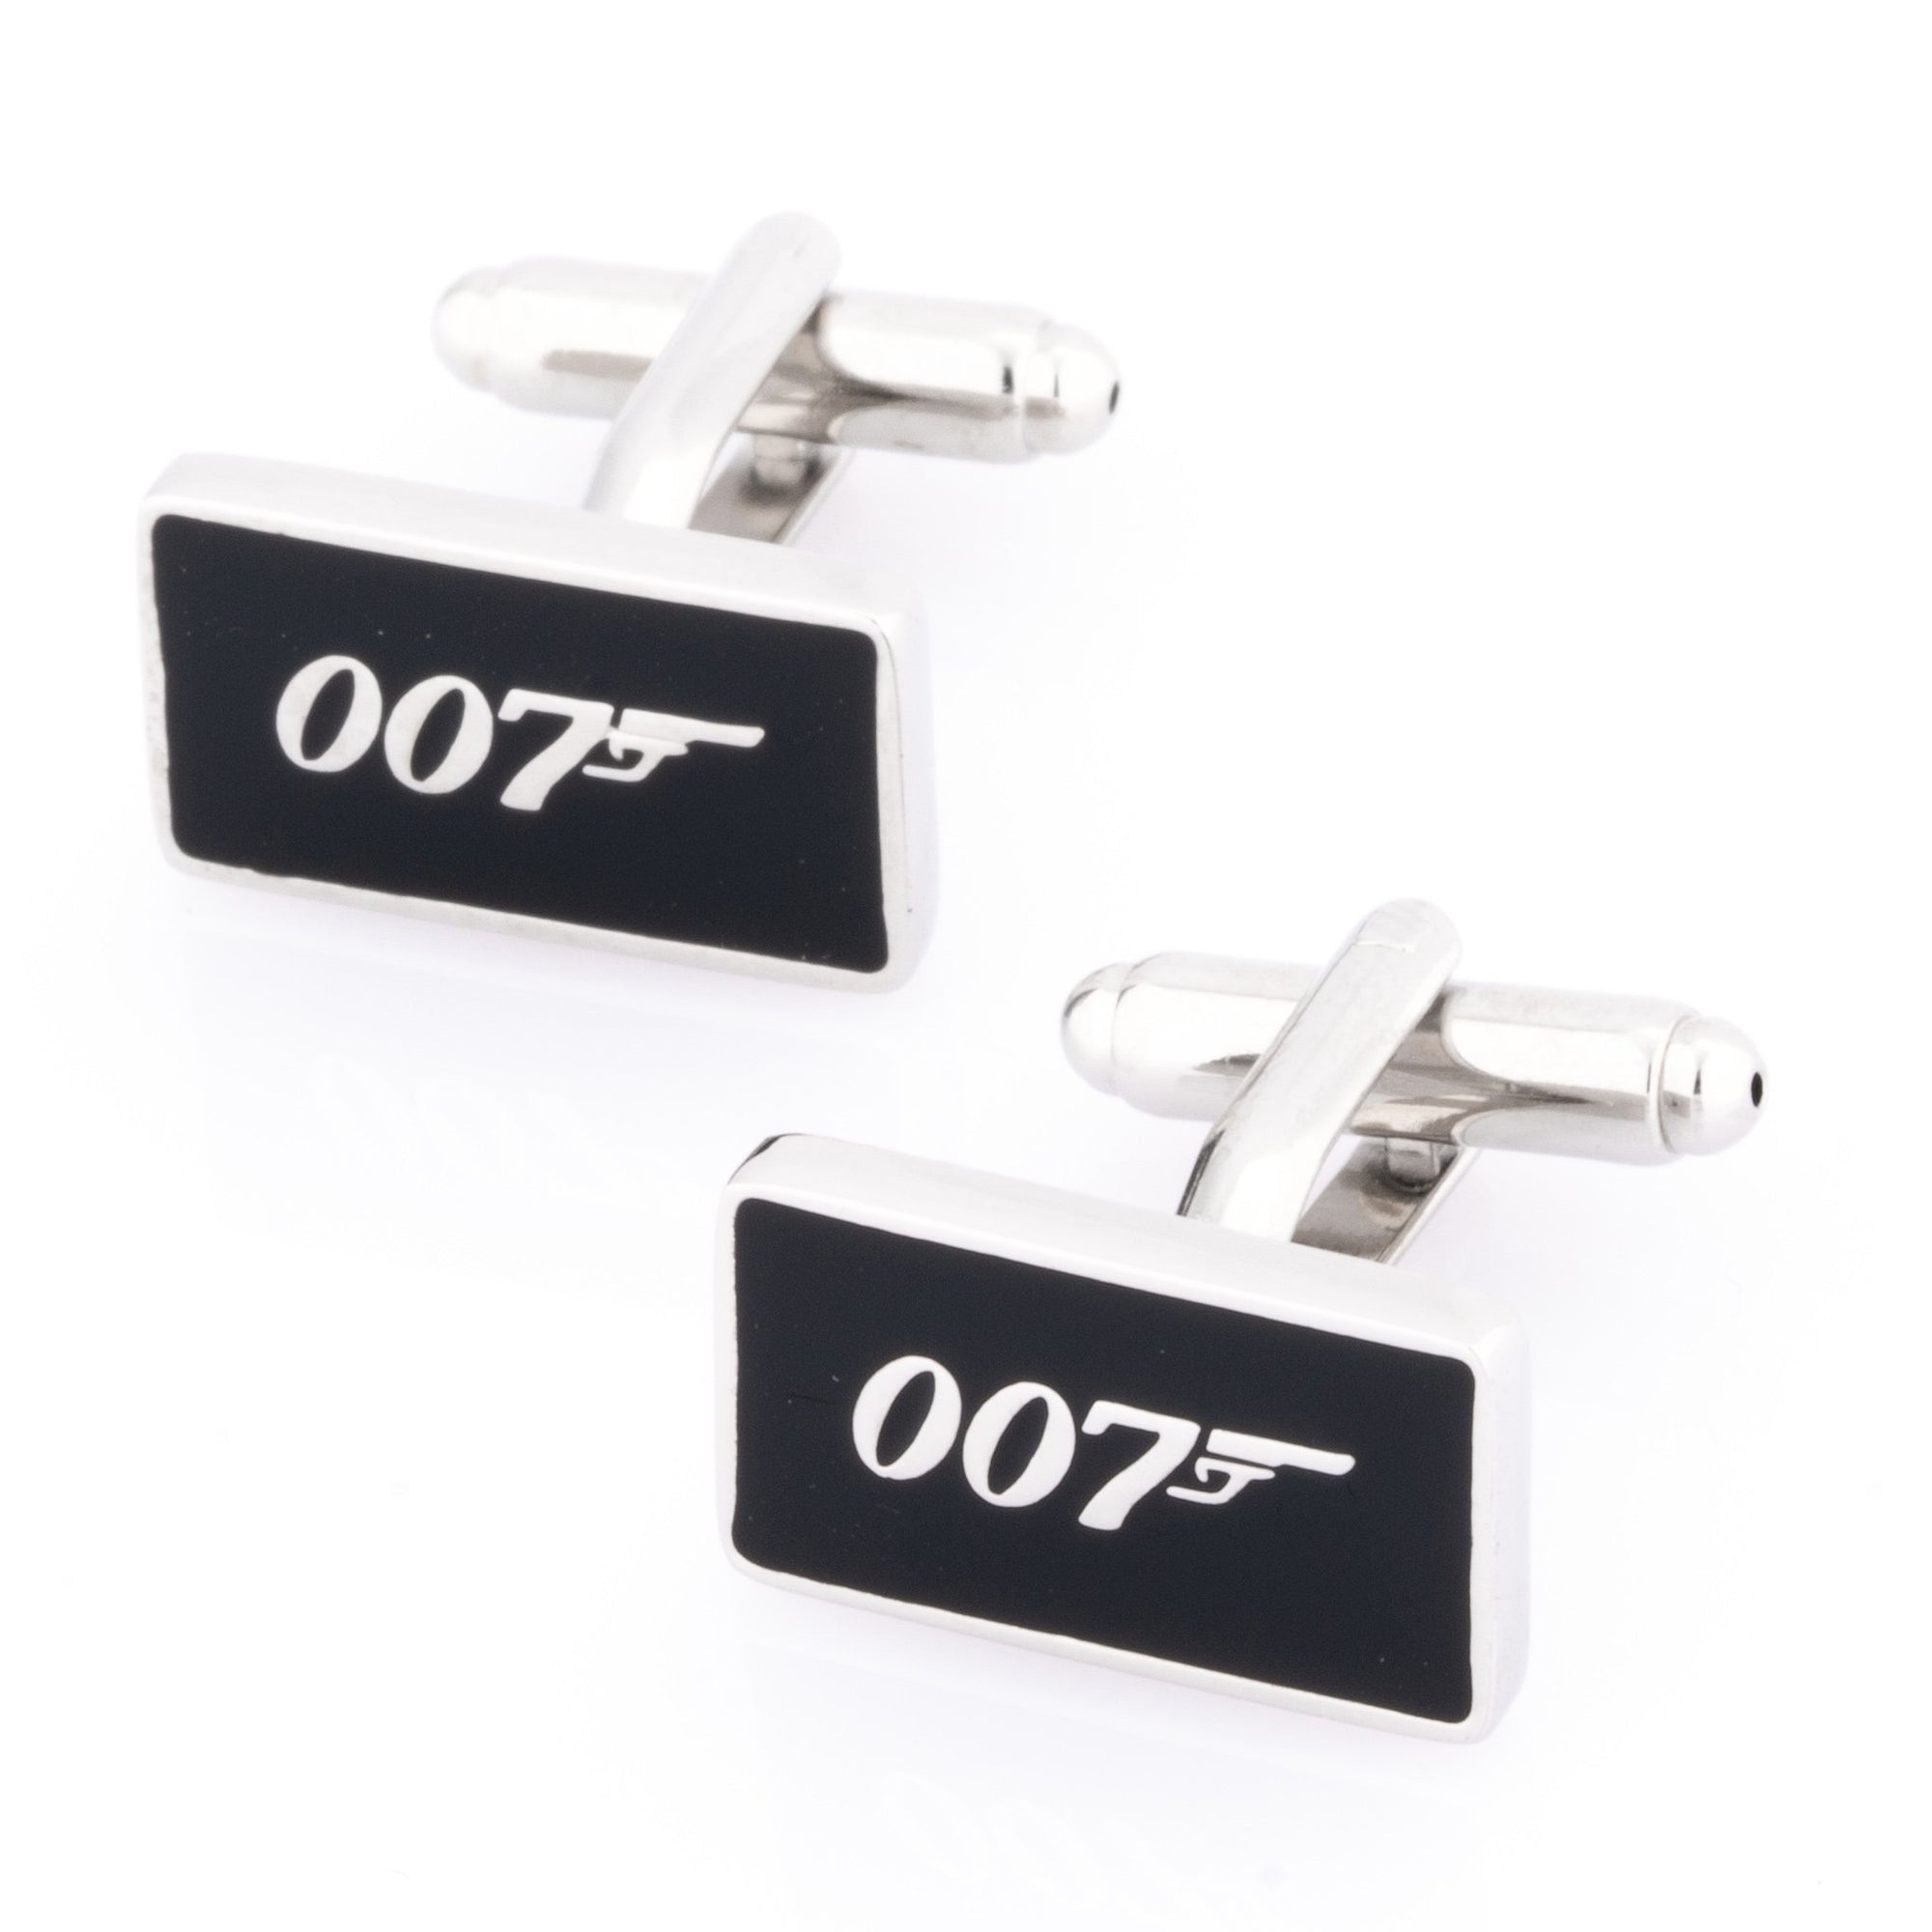 James Bond 007 Cufflinks Novelty Cufflinks Clinks Australia